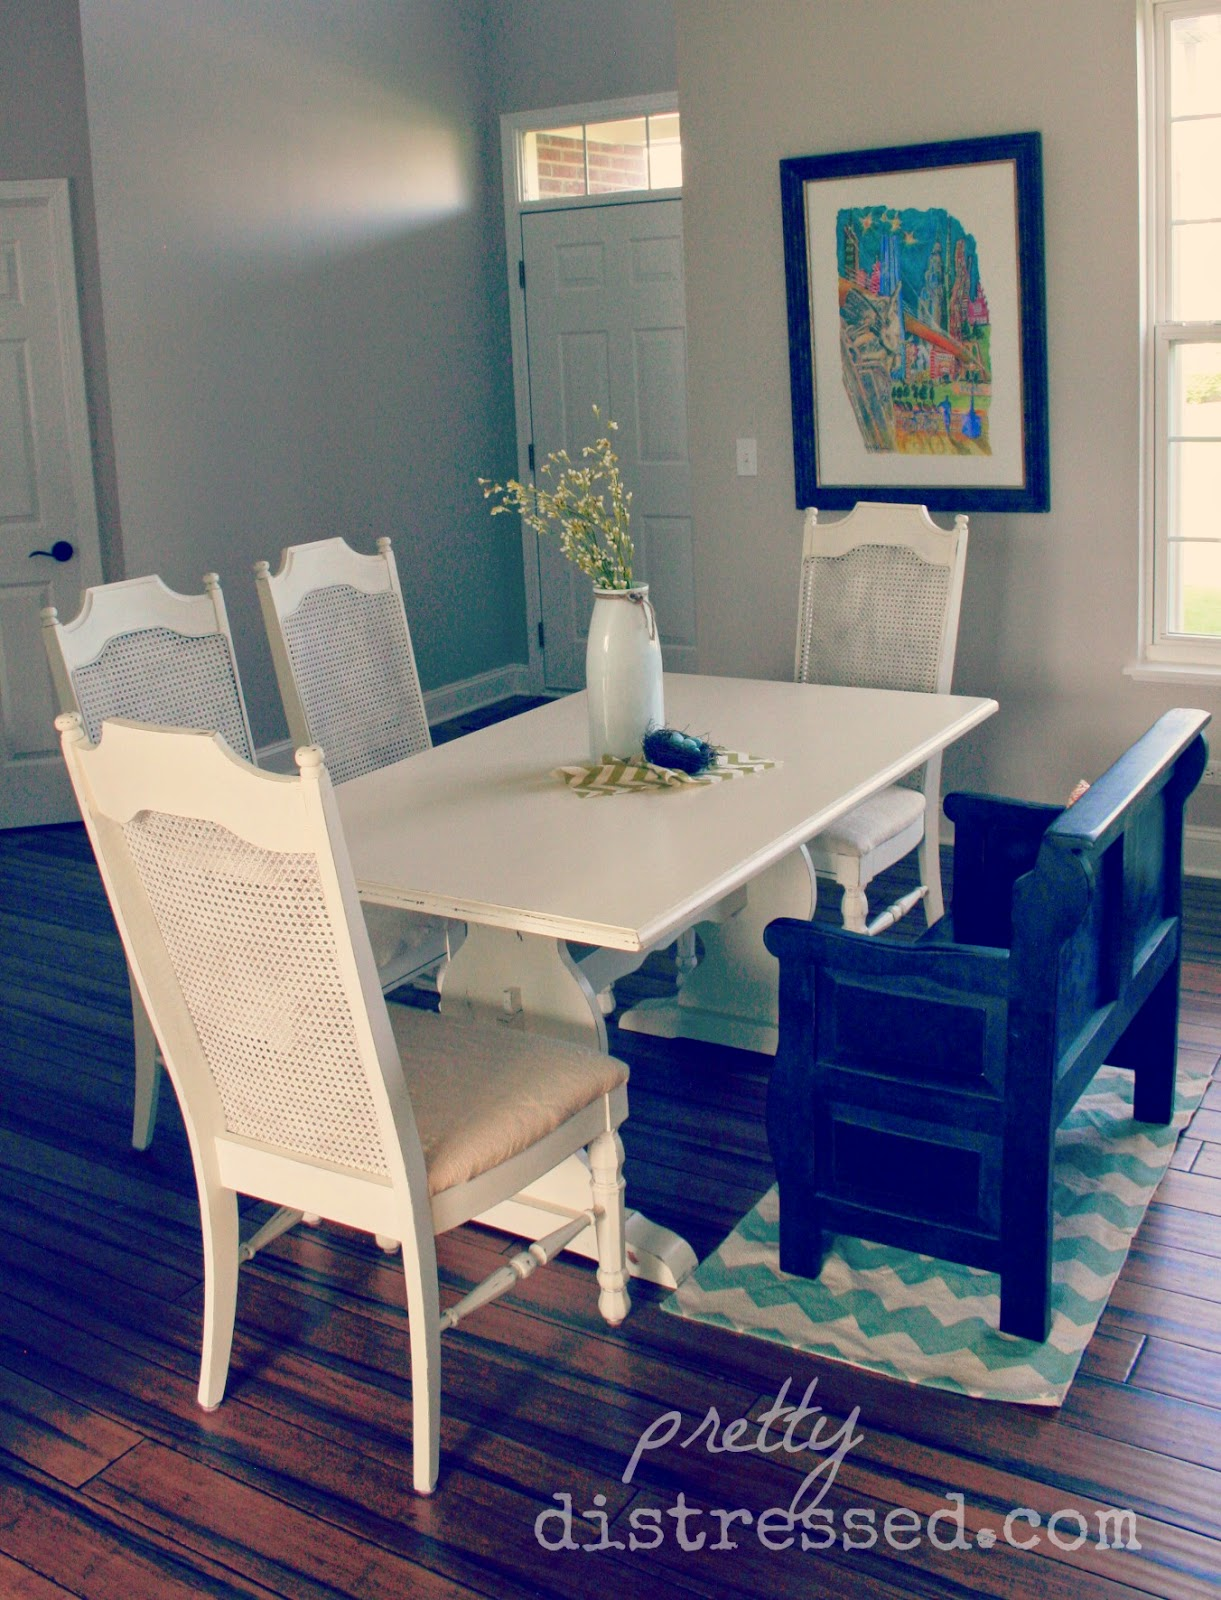 Pretty Distressed: Using A Polycrylic Sealer With Chalk Paint®